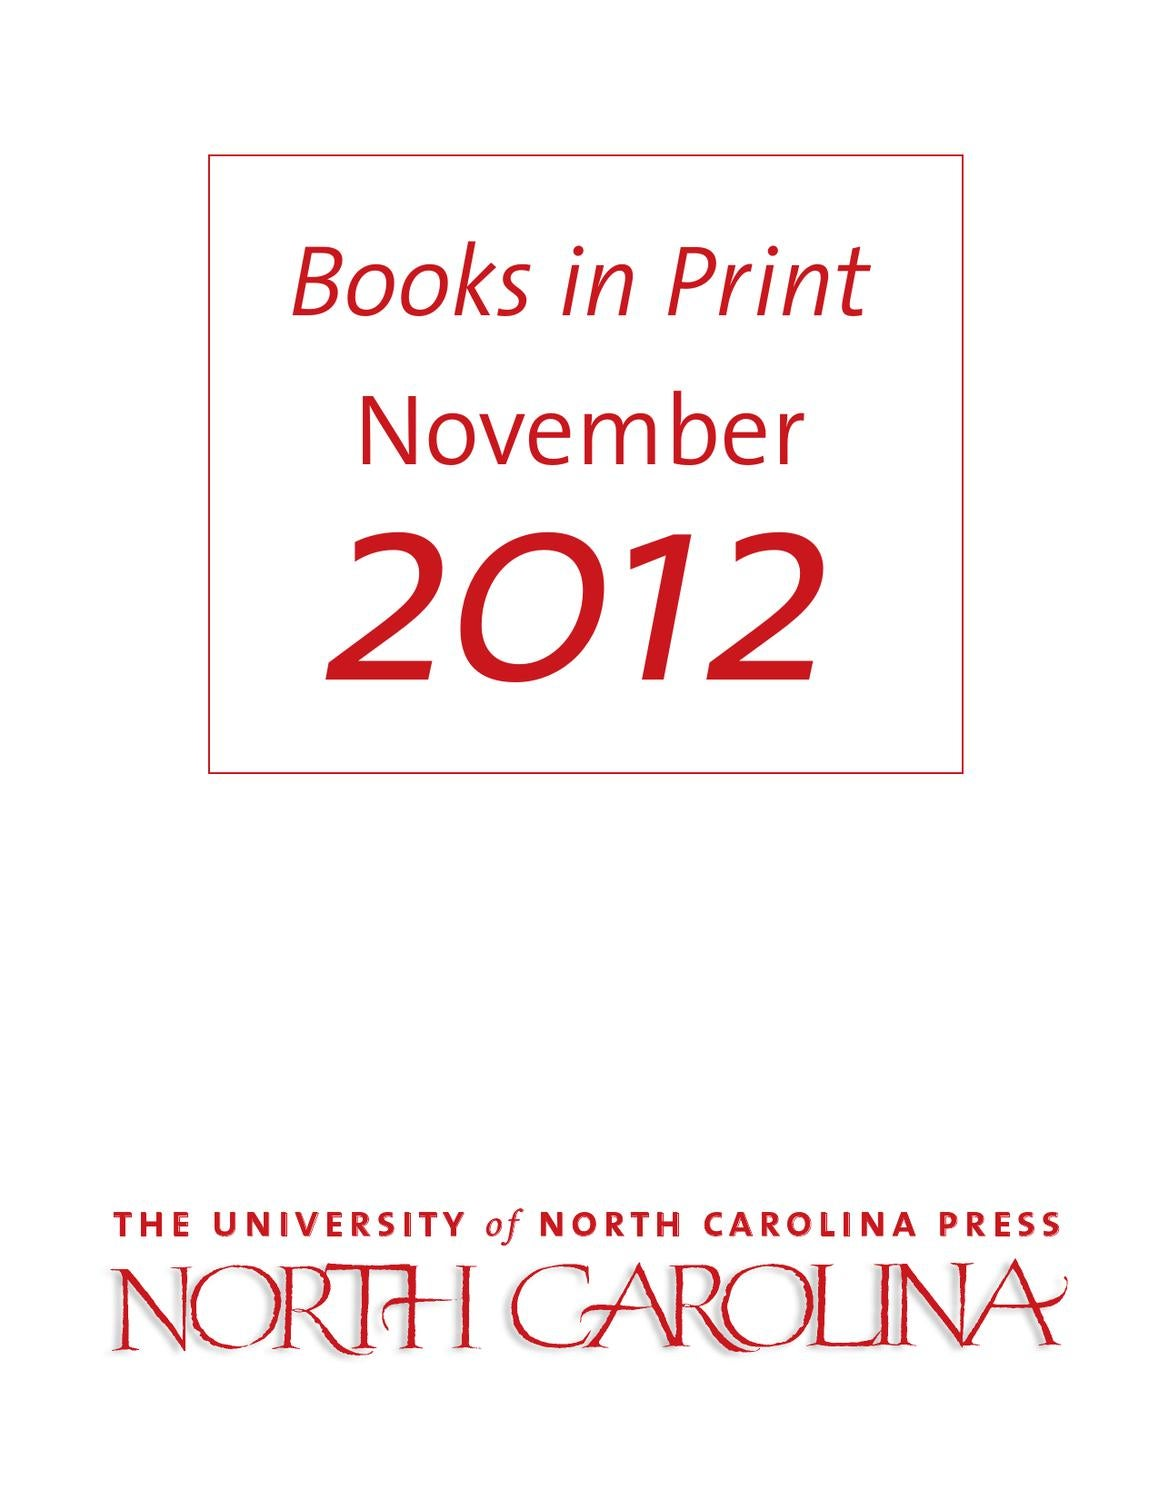 Unc press bip november 2012 by the university of north carolina unc press bip november 2012 by the university of north carolina press issuu fandeluxe Gallery